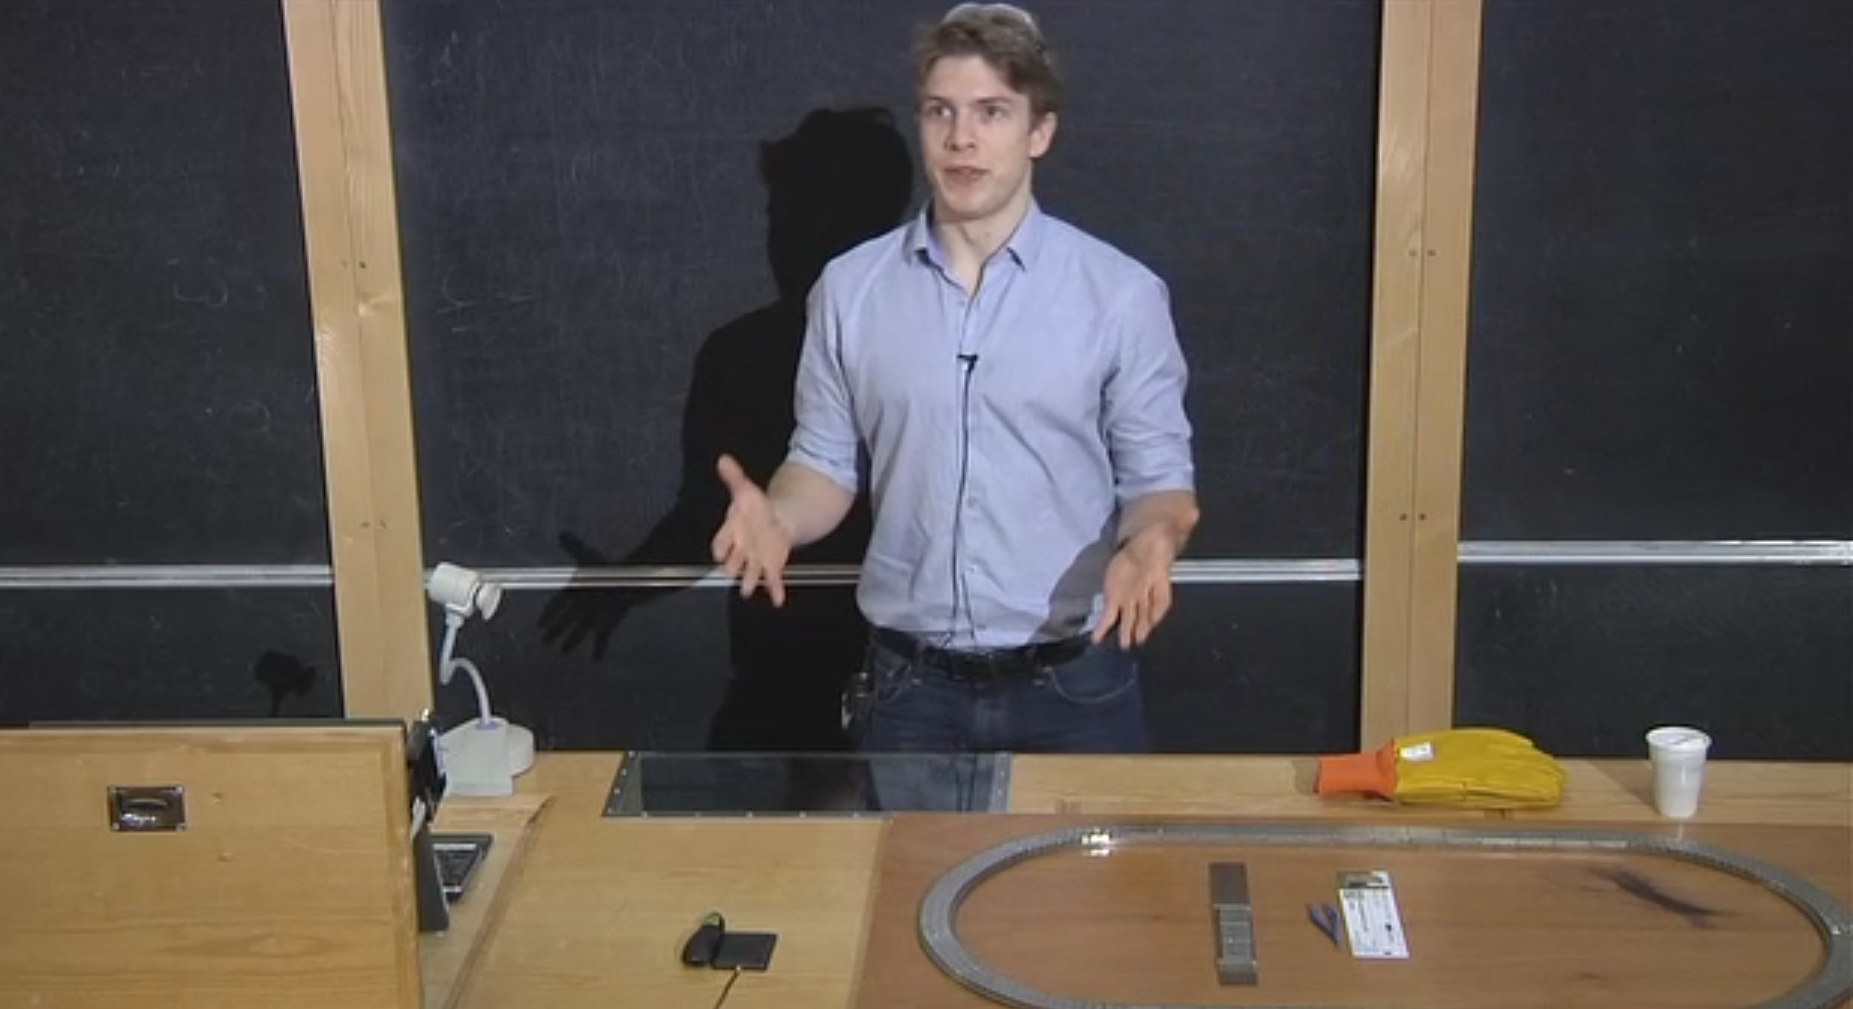 young researcher giving a talk in front of a blackboard with magnets